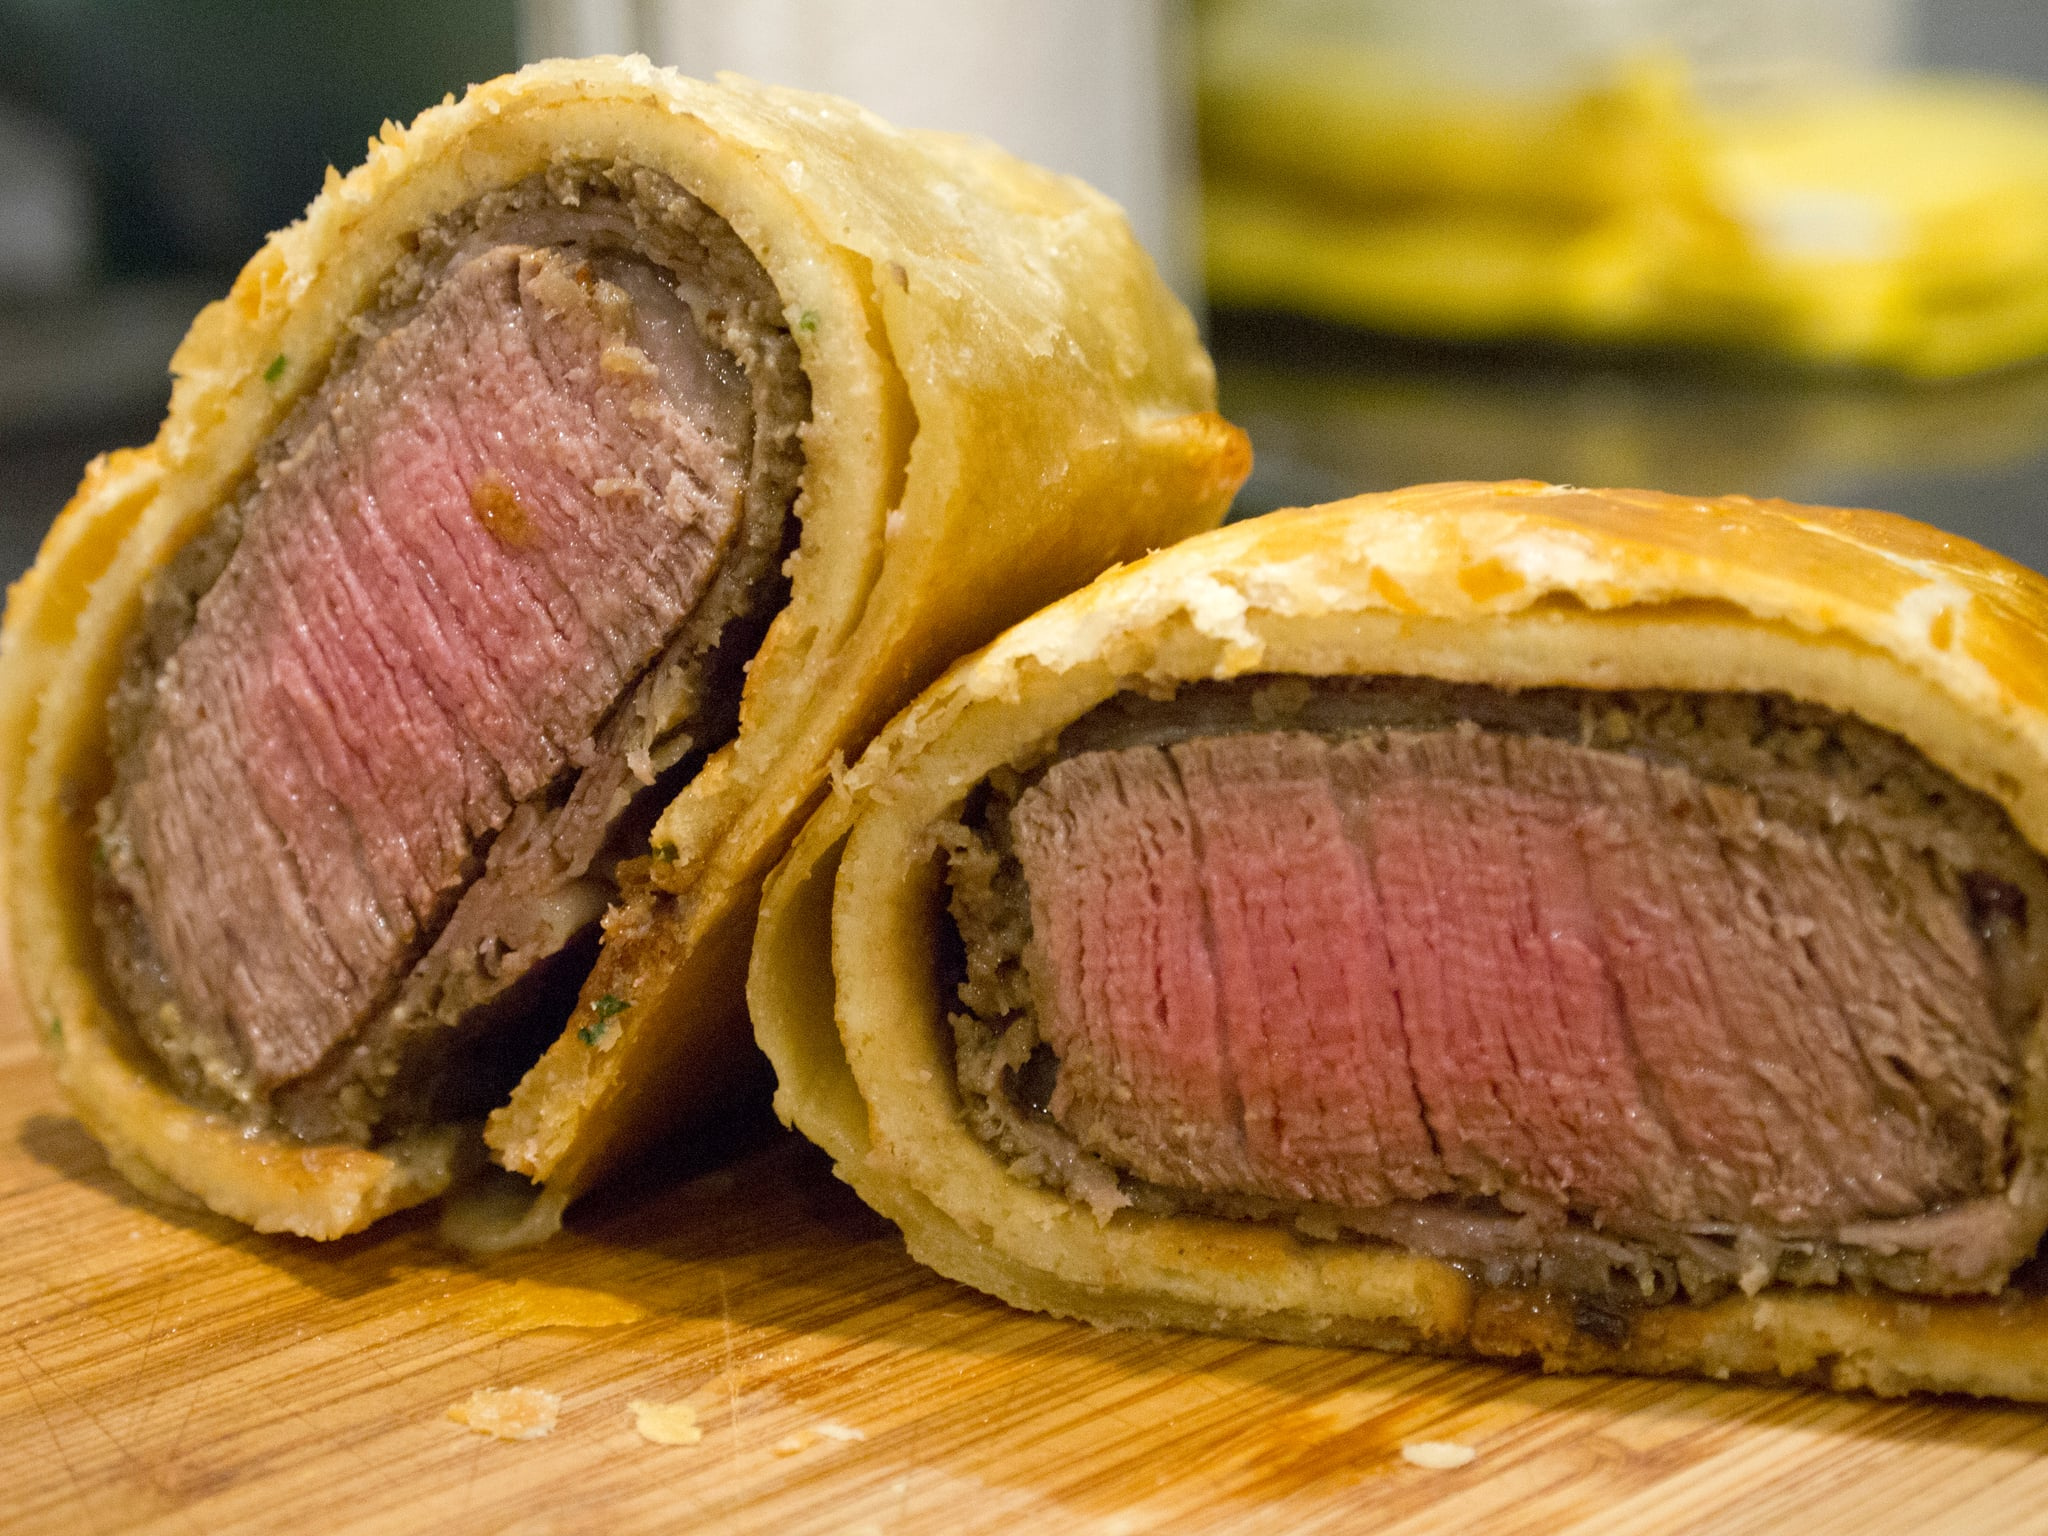 Gordon ramsay beef wellington recipe popsugar food forumfinder